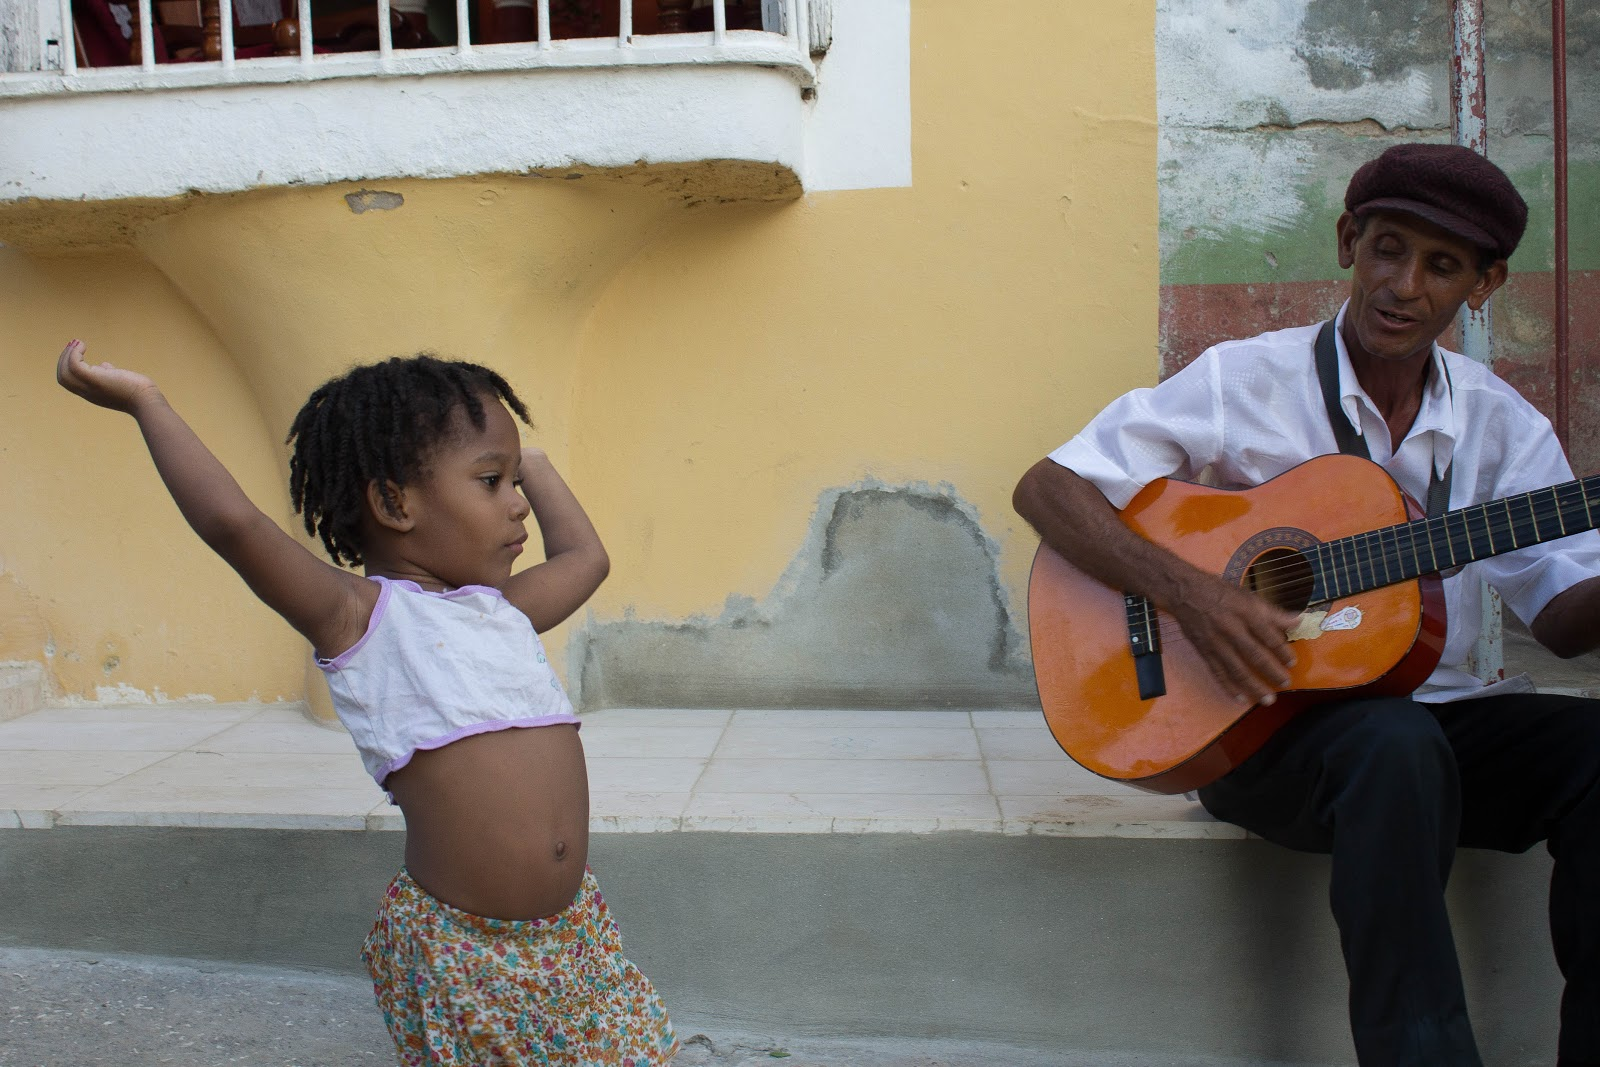 dancing girl while man plays guitar trinidad cuba